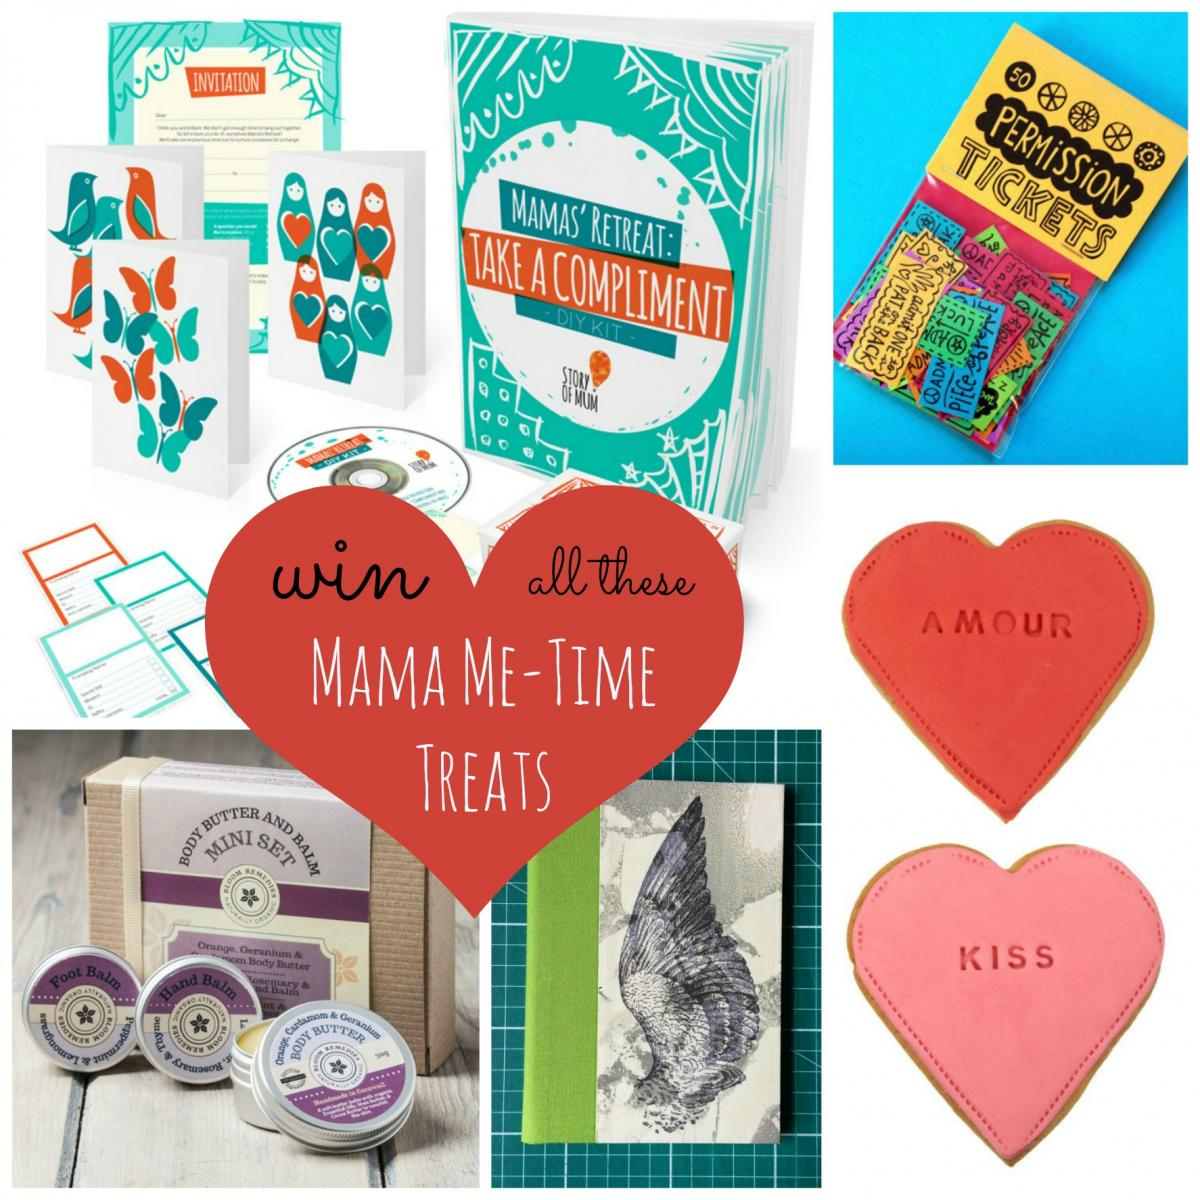 Win Mama Me-Time Treats with Story of Mum